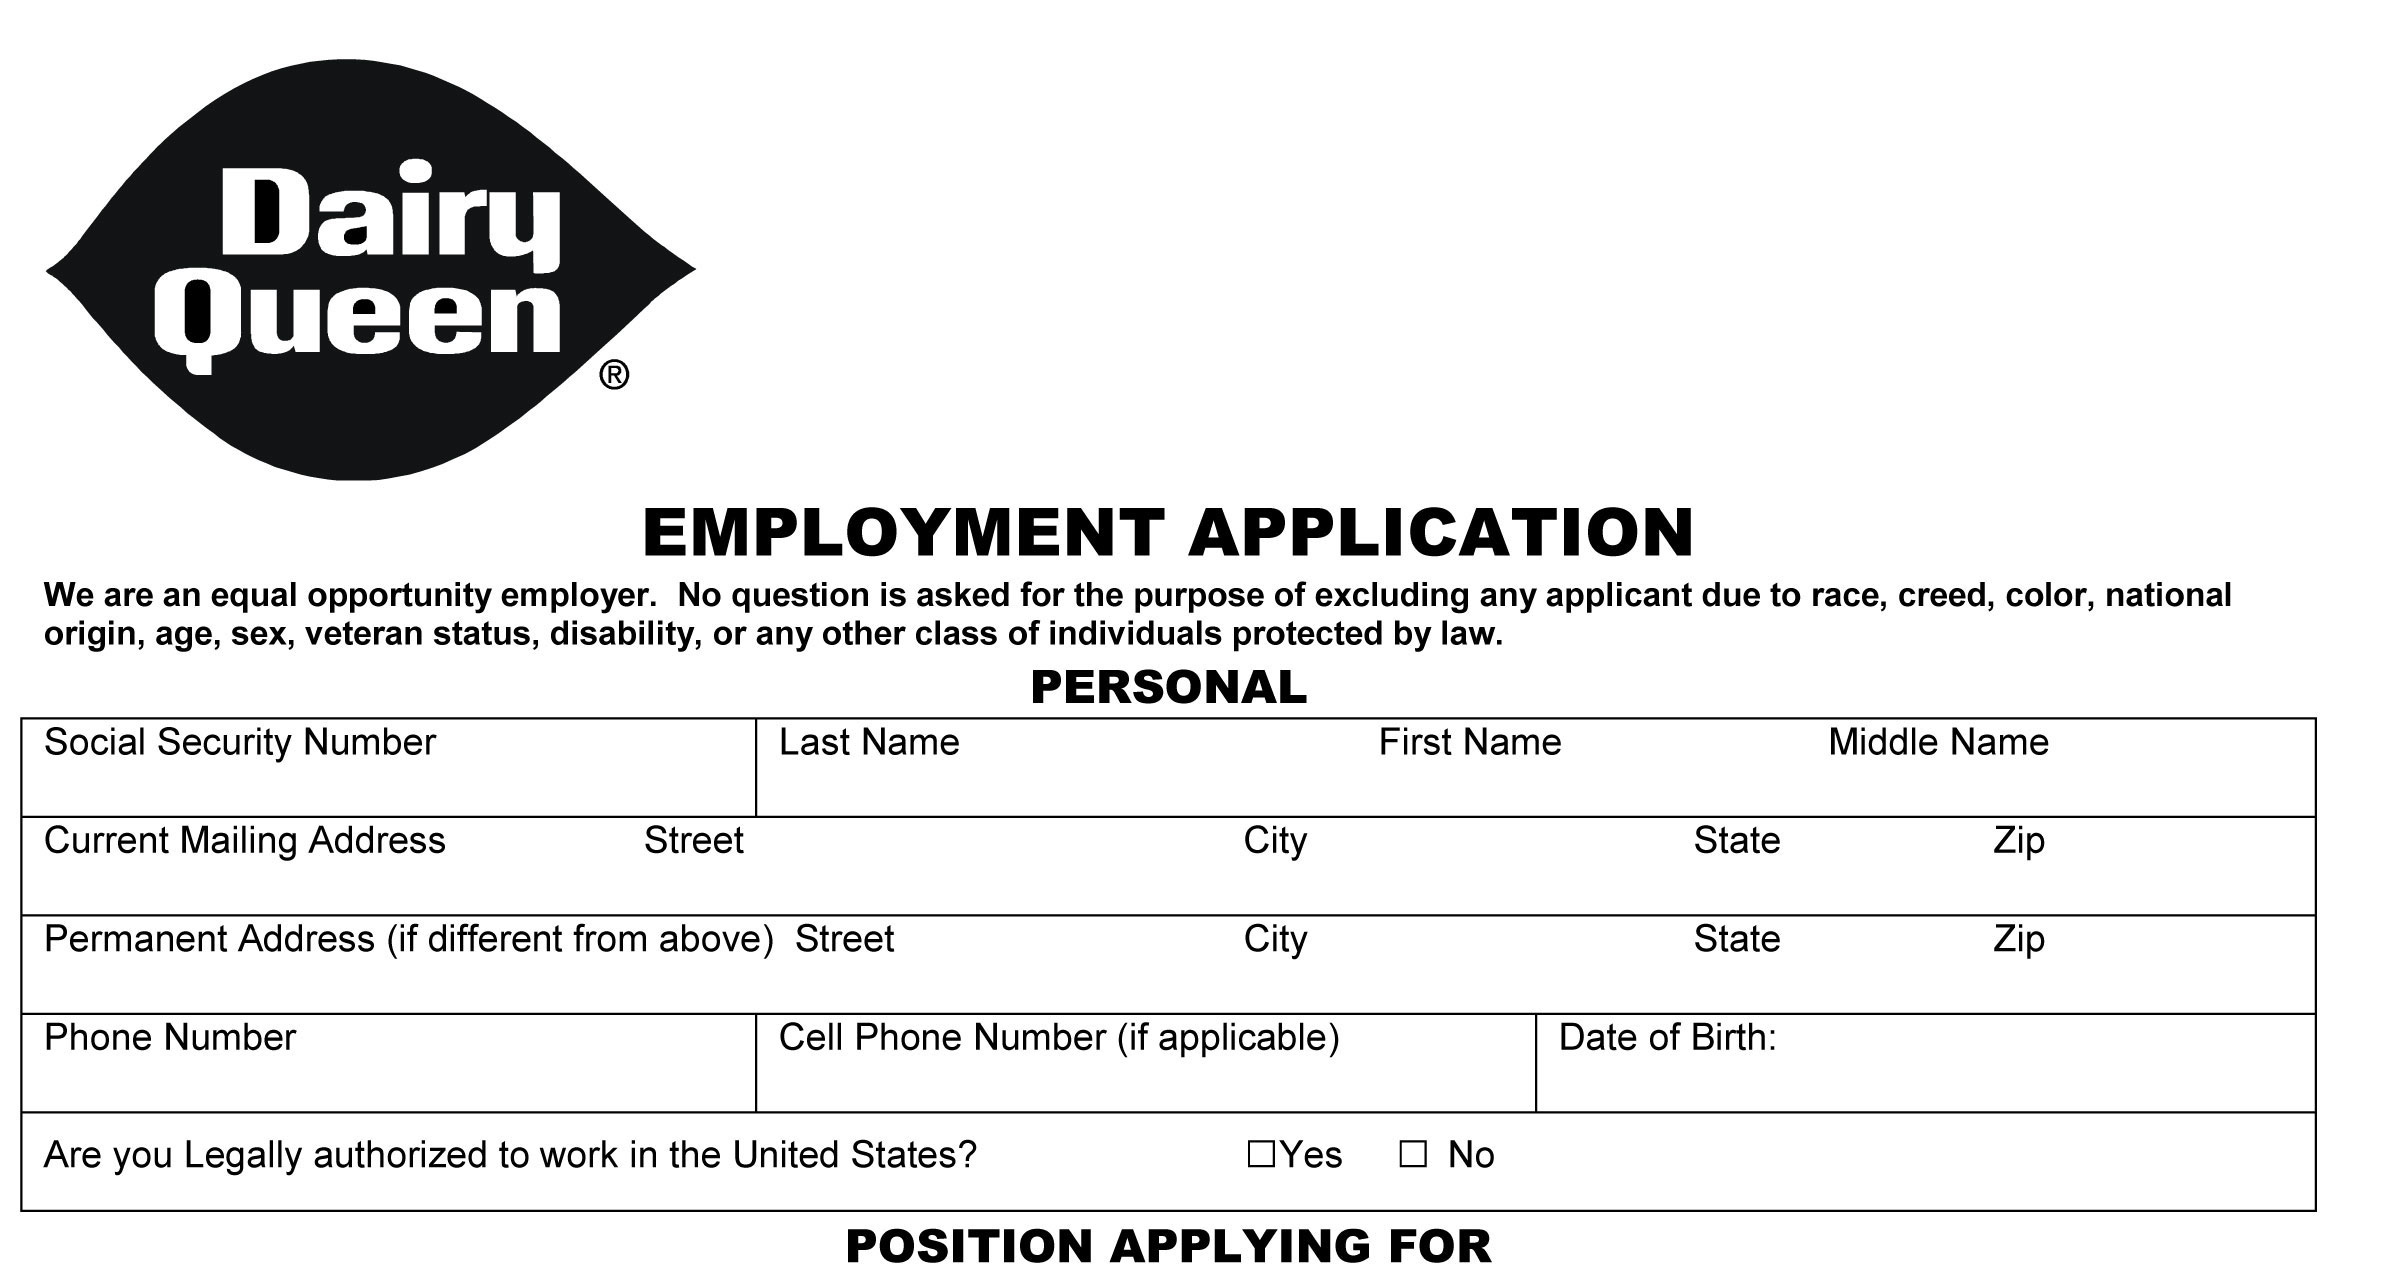 pizza hut employment application pdf best online resume builder pizza hut employment application pdf pizza hut pizza coupons pizza deals pizza delivery pics photos